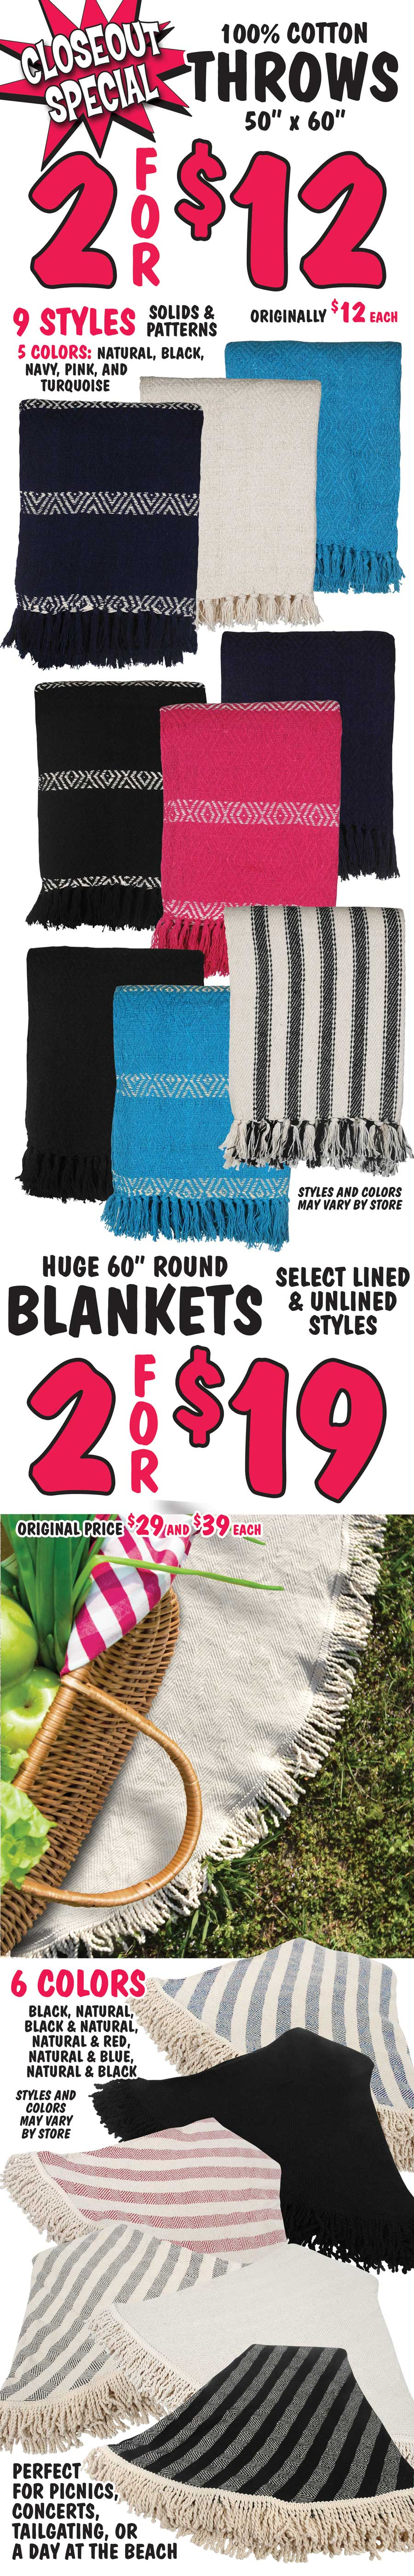 Closeout Special - Cotton Throws, 2 for $12, 60 inch Round Blankets, 2 for $19